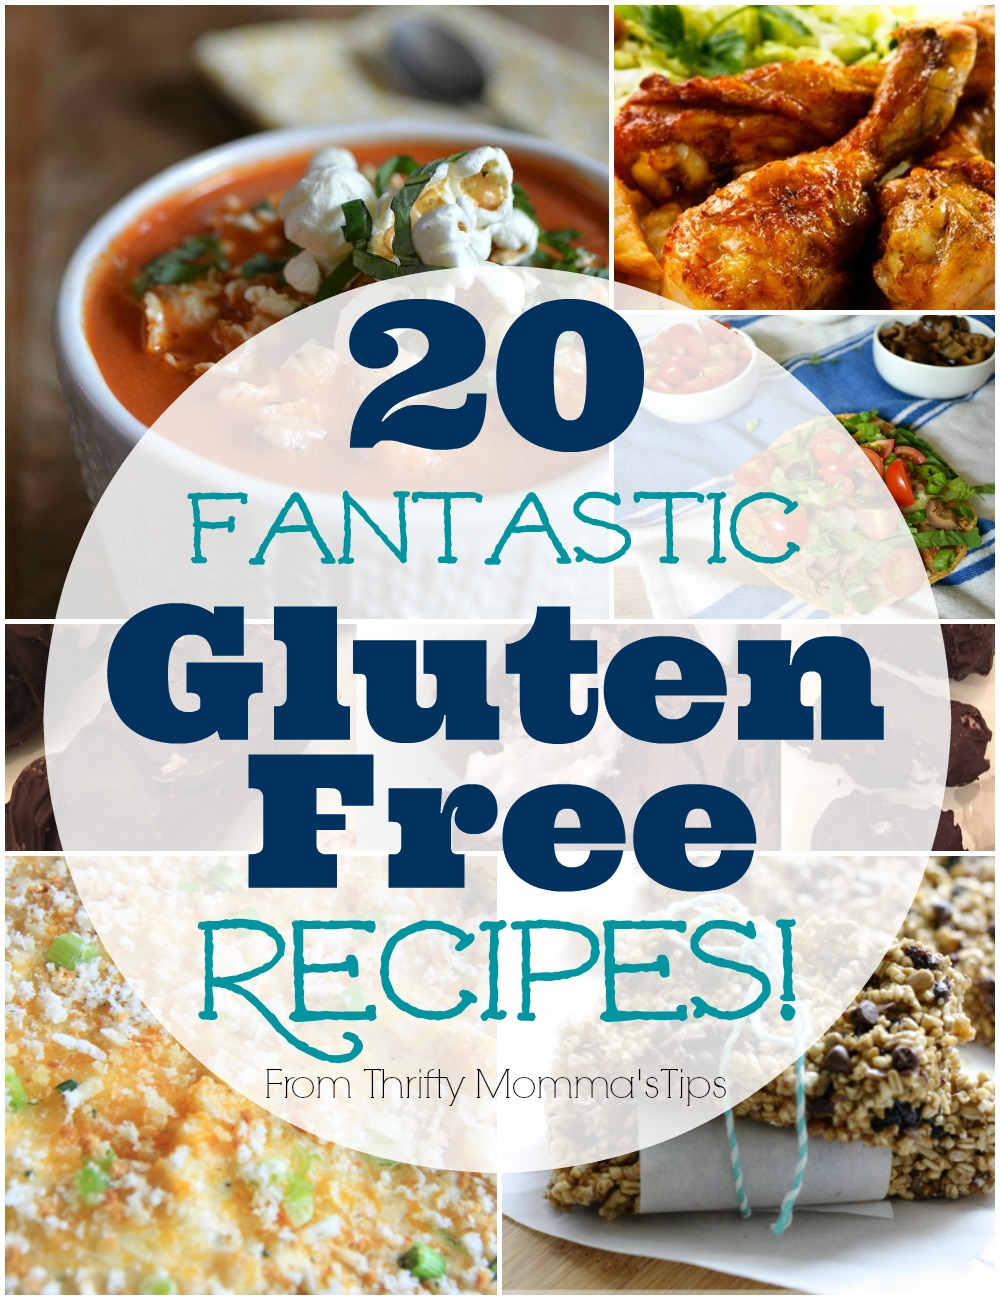 Fantastic Gluten Free Recipes